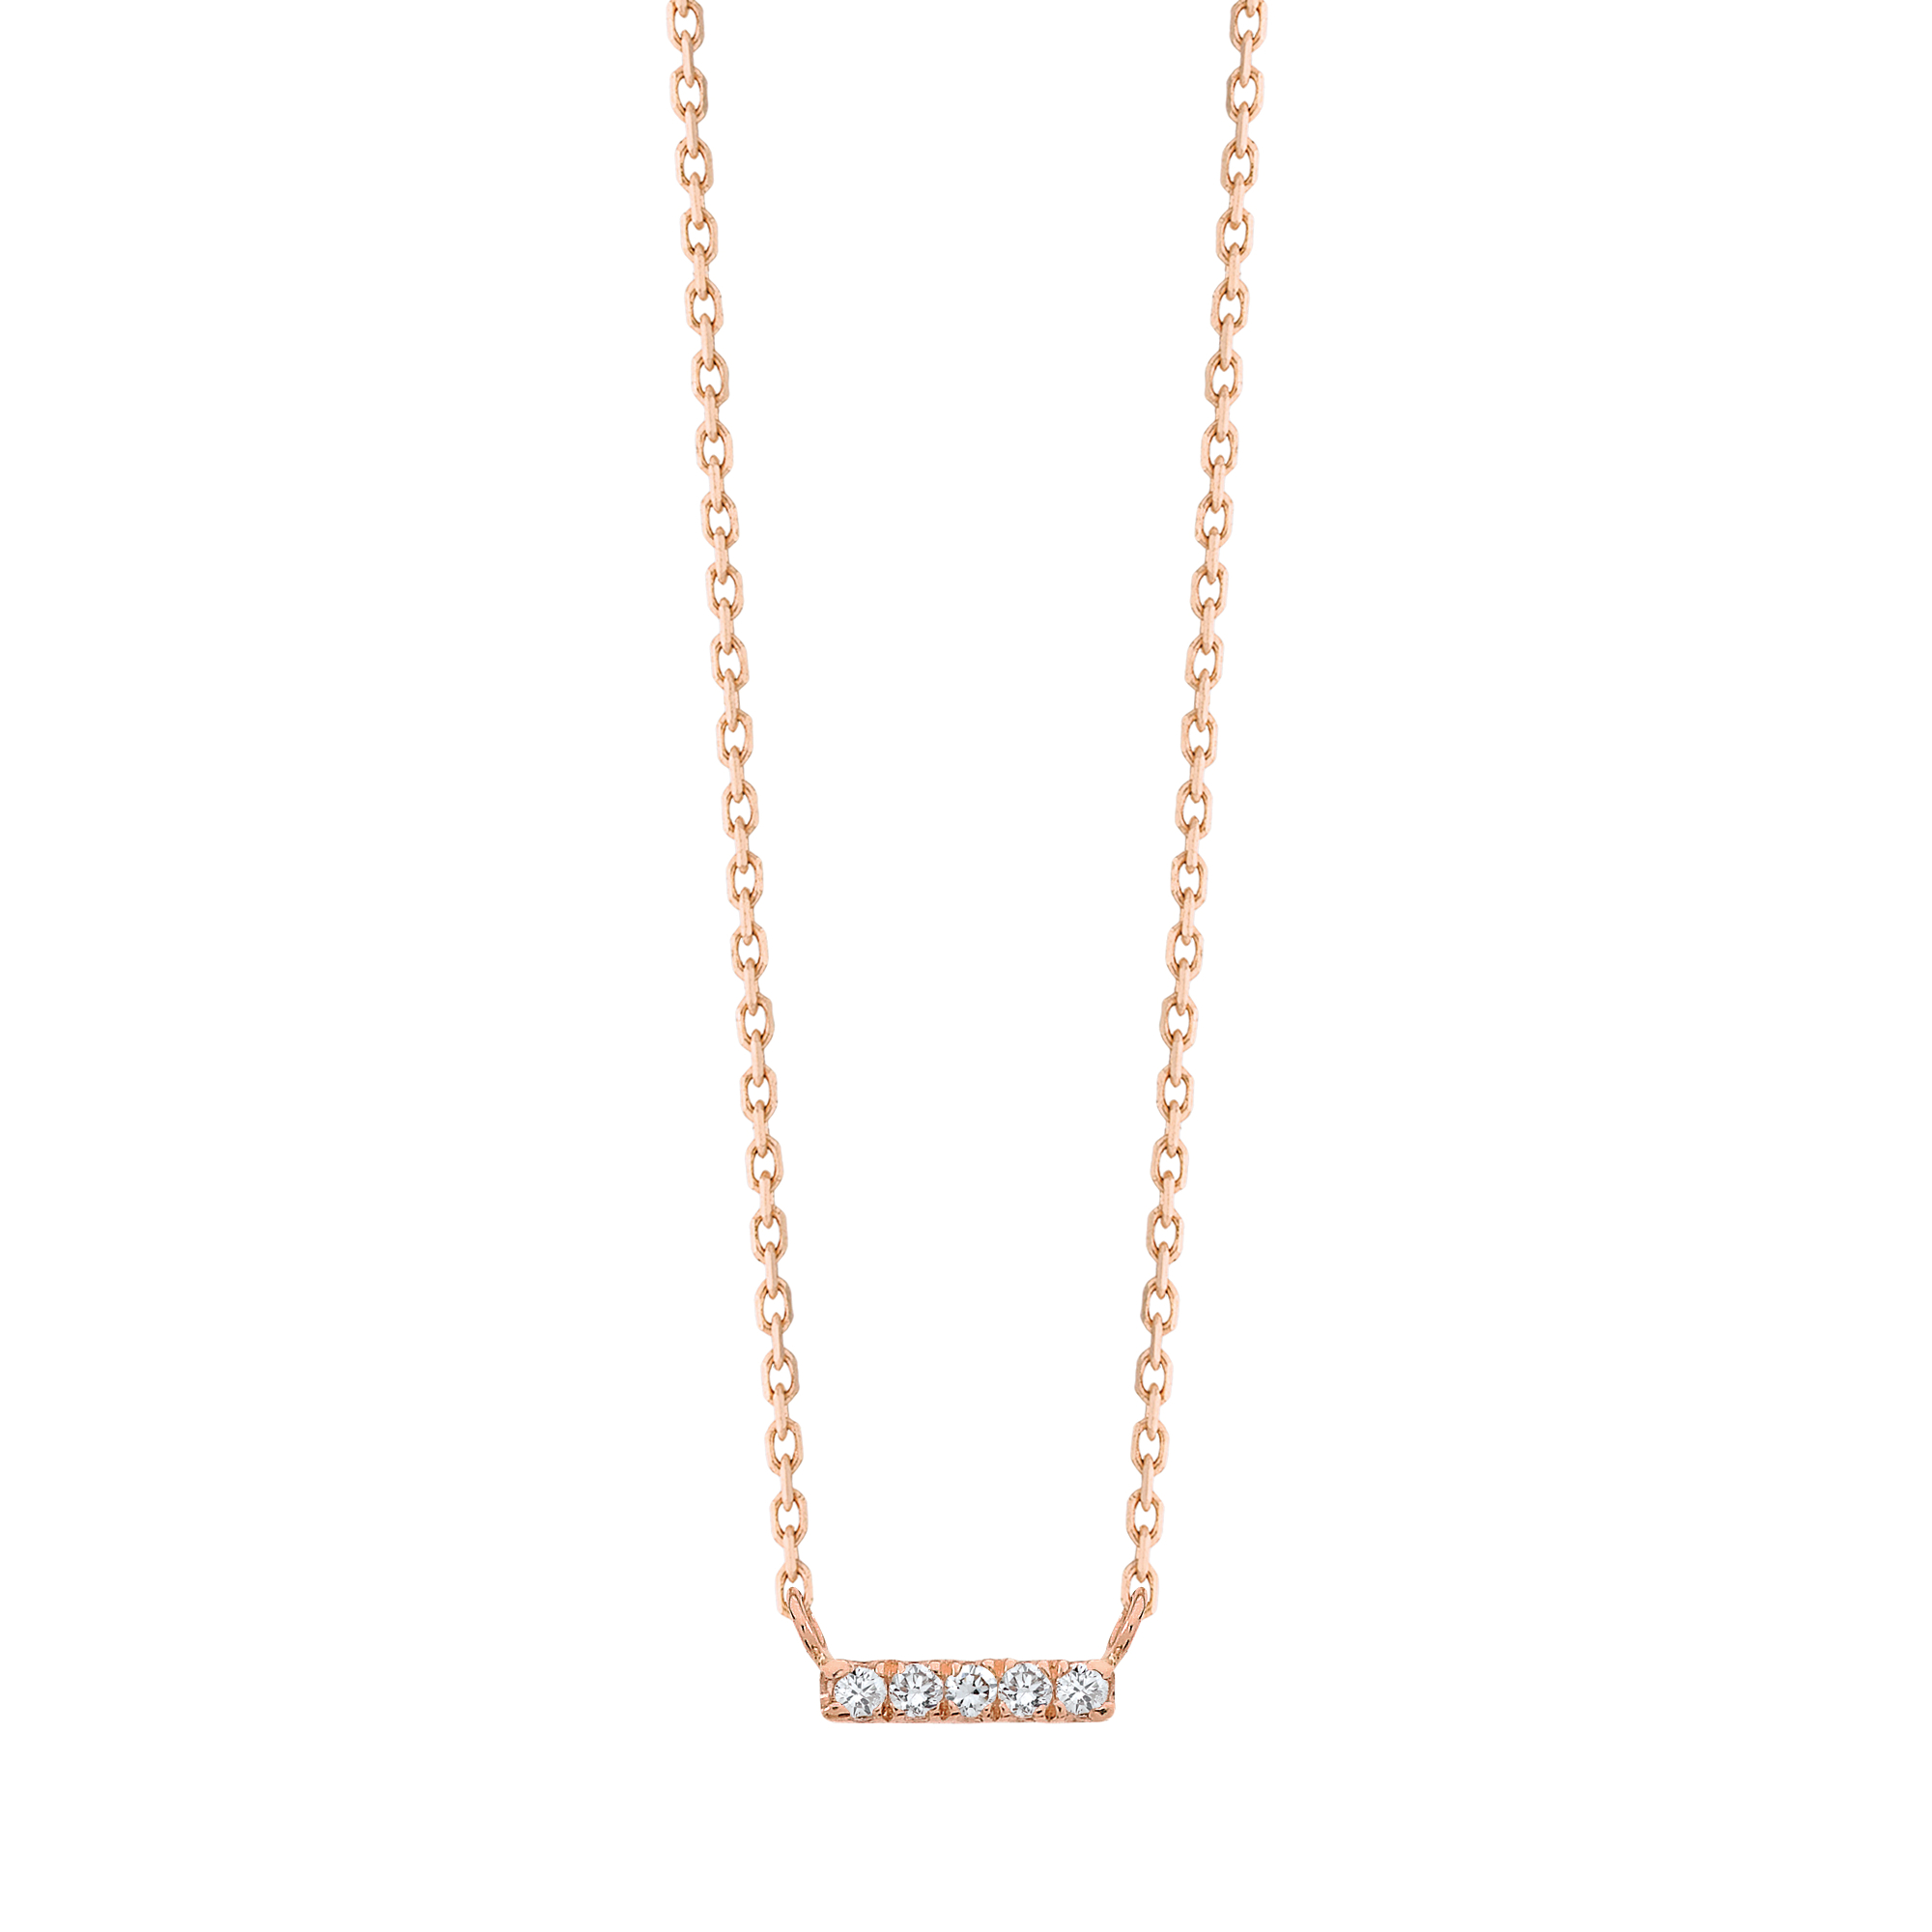 Medellin Pendant Necklace in gold and diamonds Vanrycke